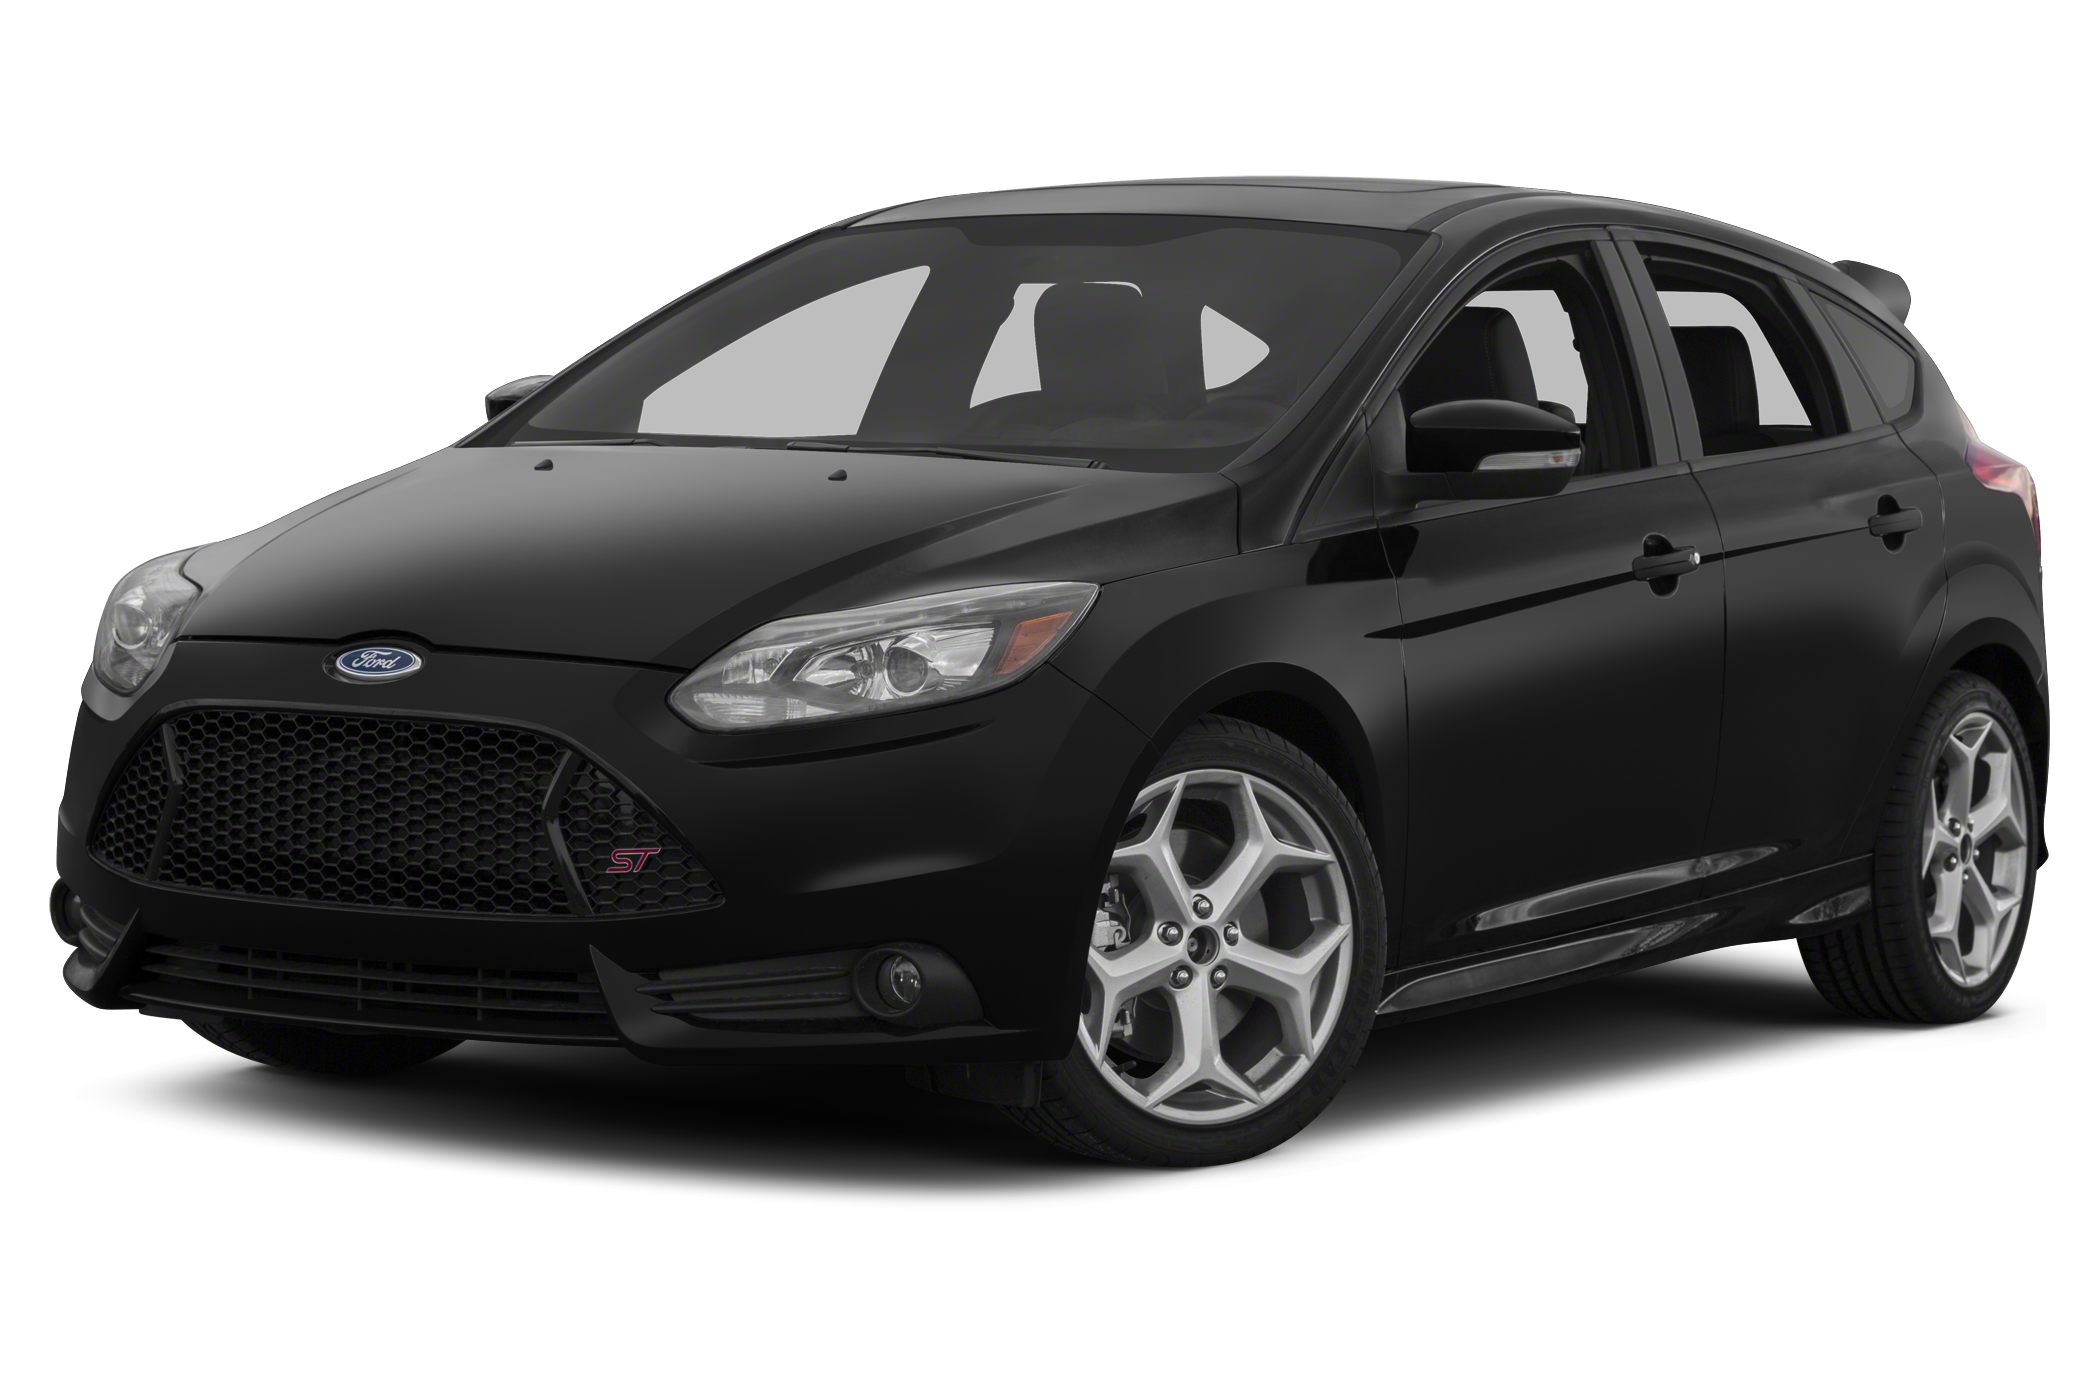 2013 Ford Focus ST Base BLUETOOTH MP3 Player KEYLESS ENTRY 32 MPG Highway TURBOCHARGED ALLOY